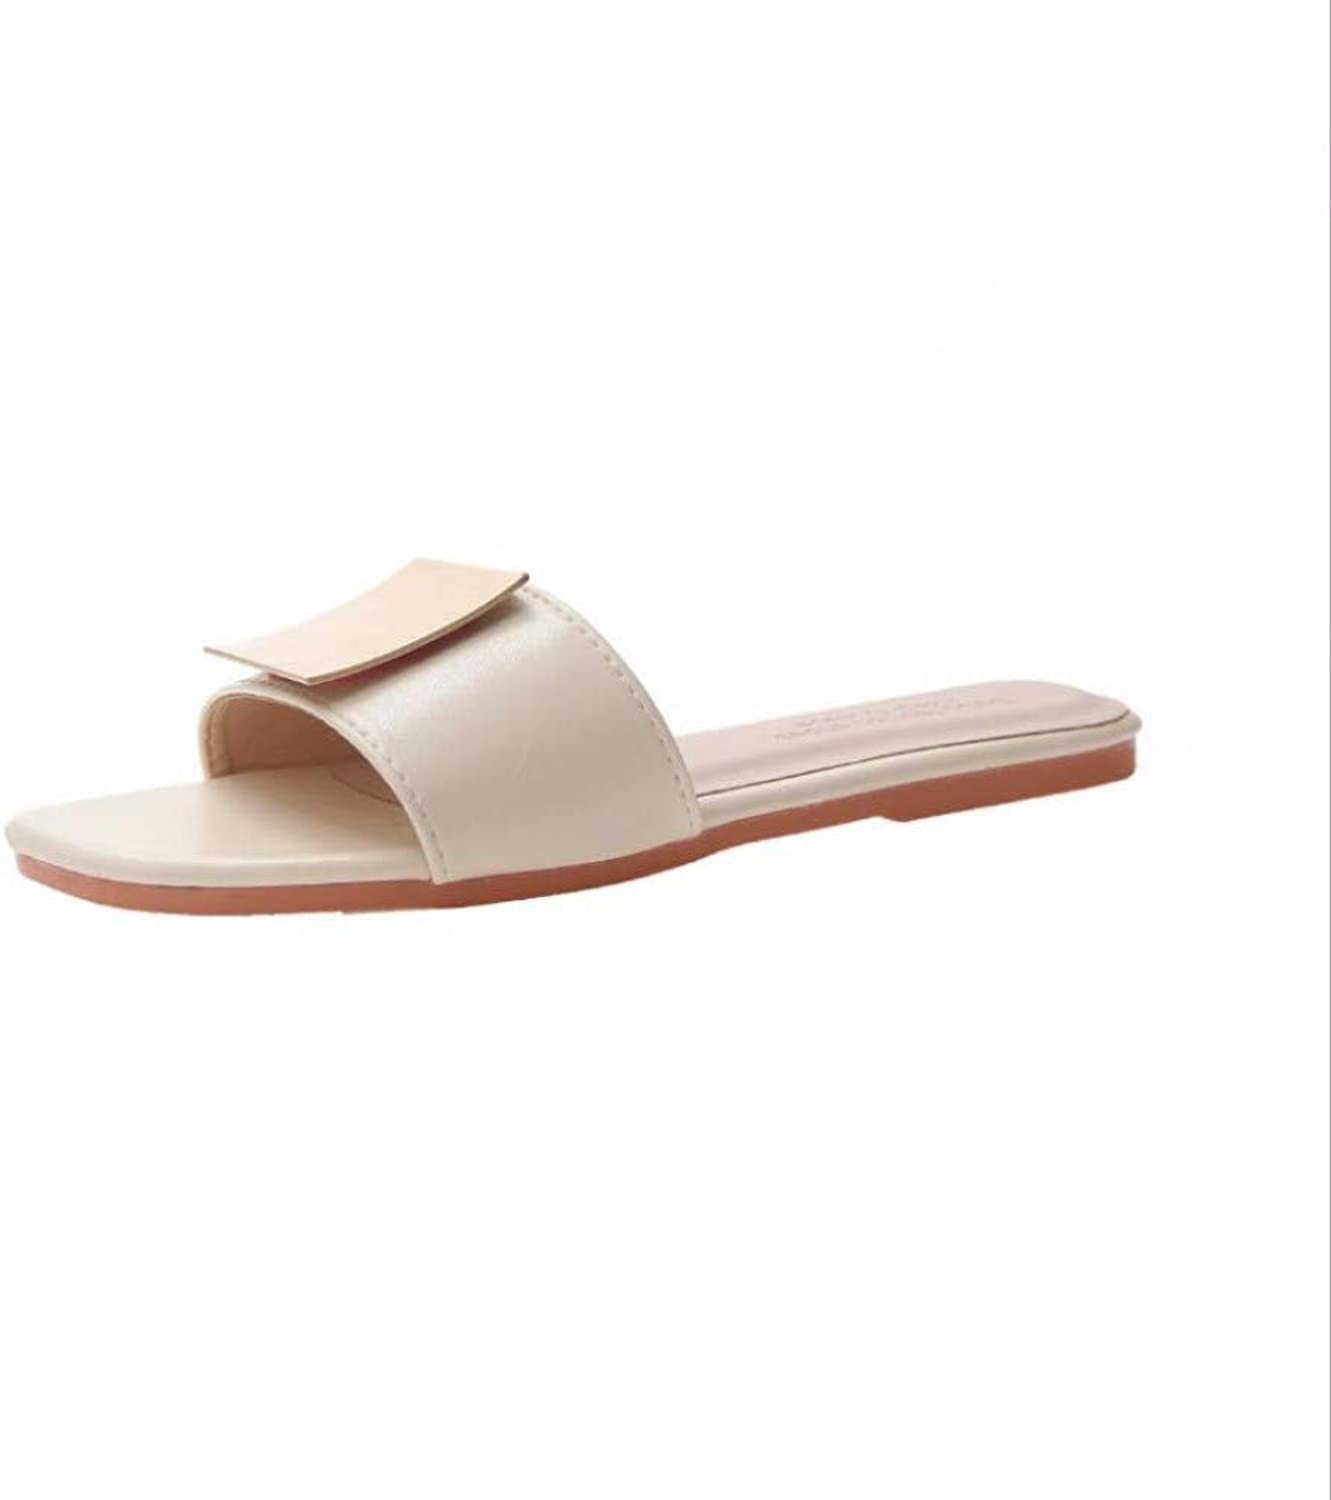 JFBZS-sandals Slippers Female Summer New Korean Edition Fashion Outside Simple One-Word Flat-Soled Slippers